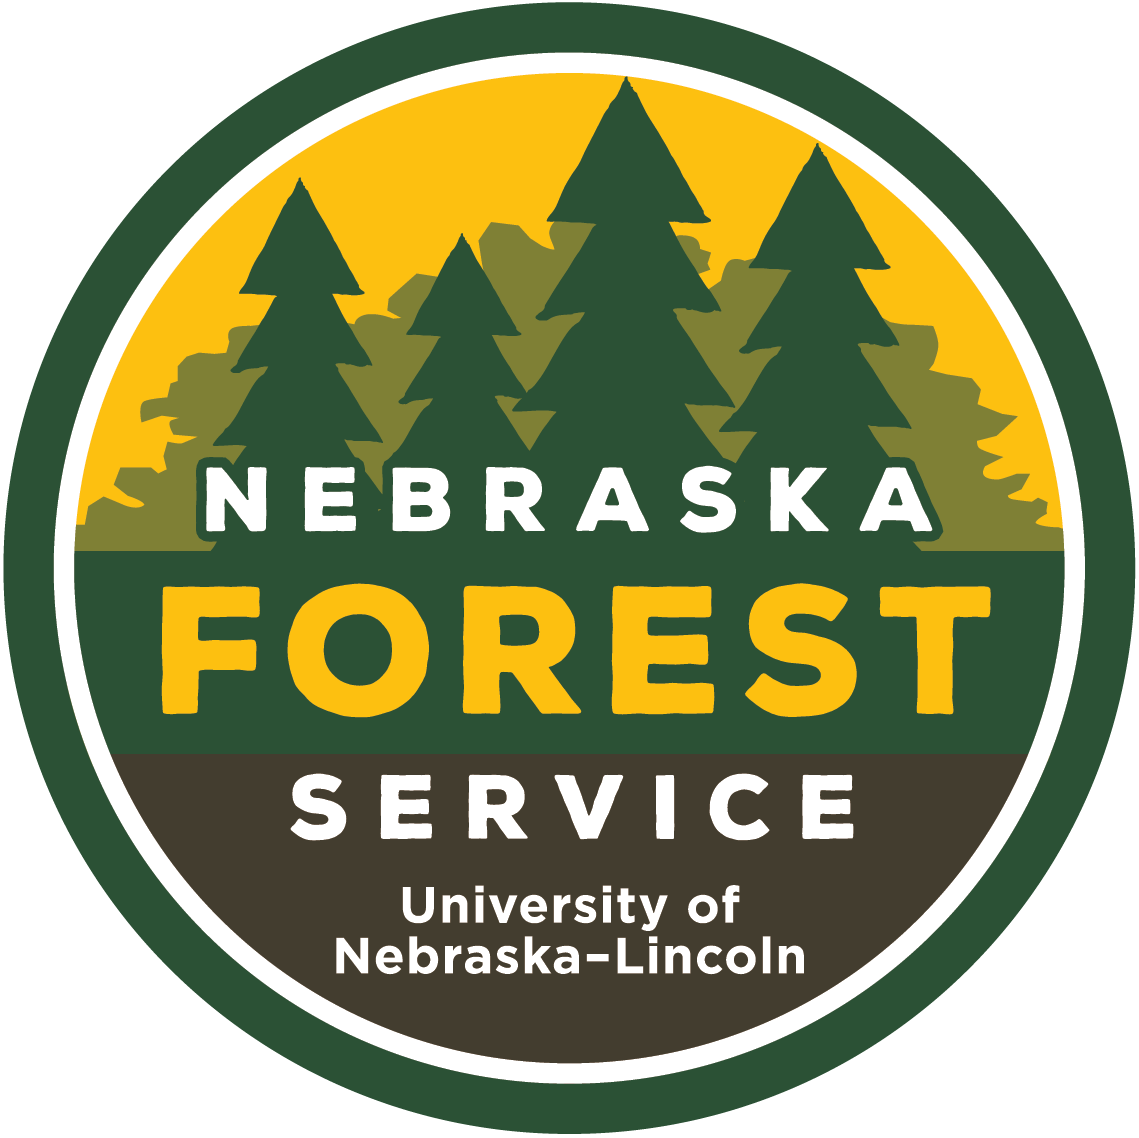 The latest Nebraska Forest Service logo